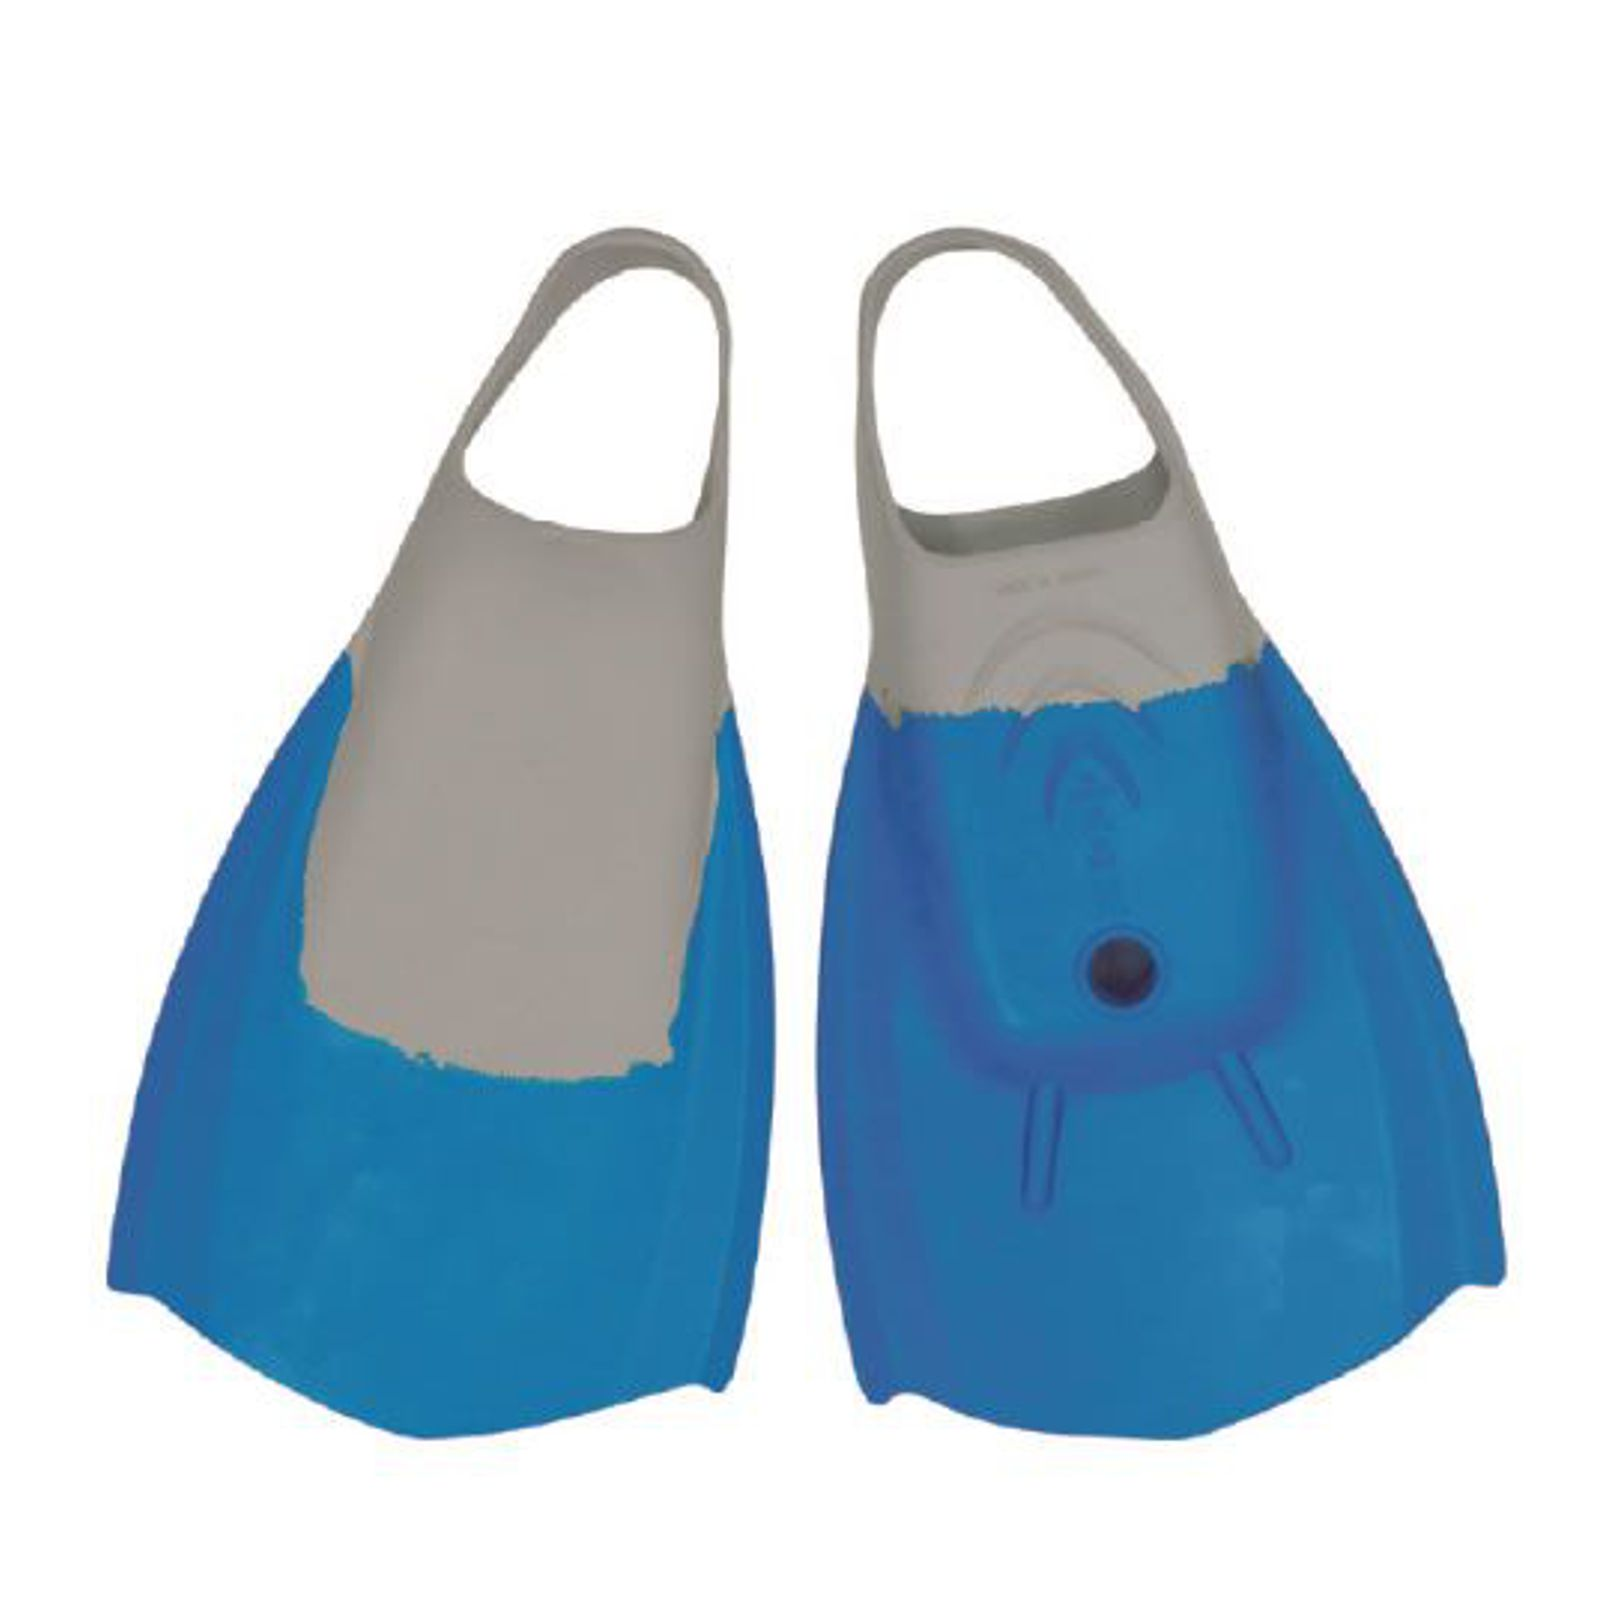 WAVE POWER Bodyboard Flossen S 36-38 Blau Grau